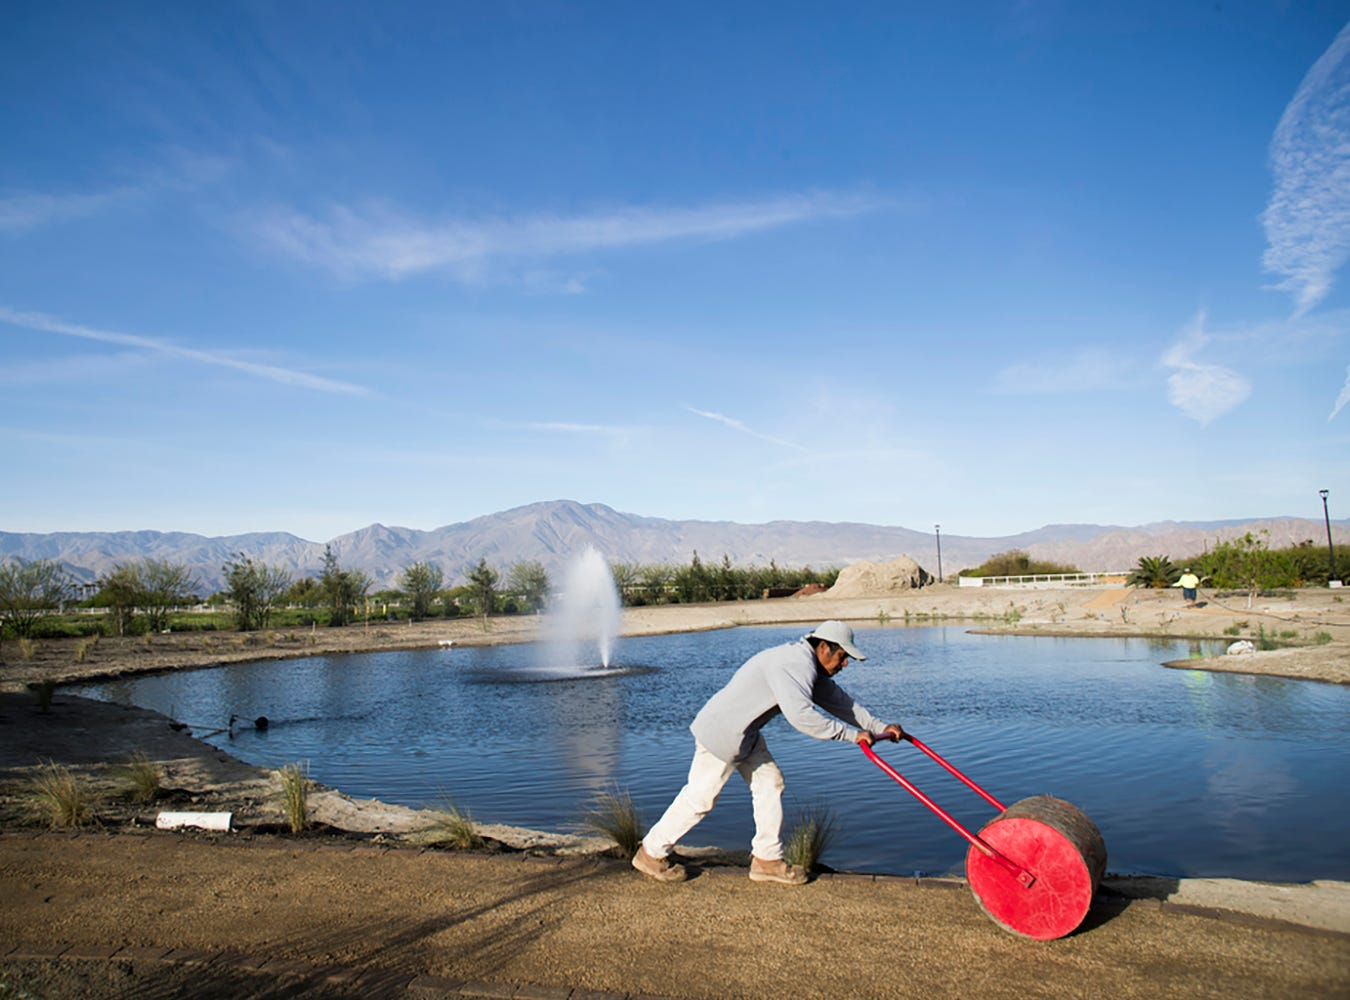 The Augustine tribe is in the final stretch of opening a 33-acre farm on their reservation, featuring a landscaped, exhibition garden. In this photo, a worker flattens out a path near the pond on the organic farm.